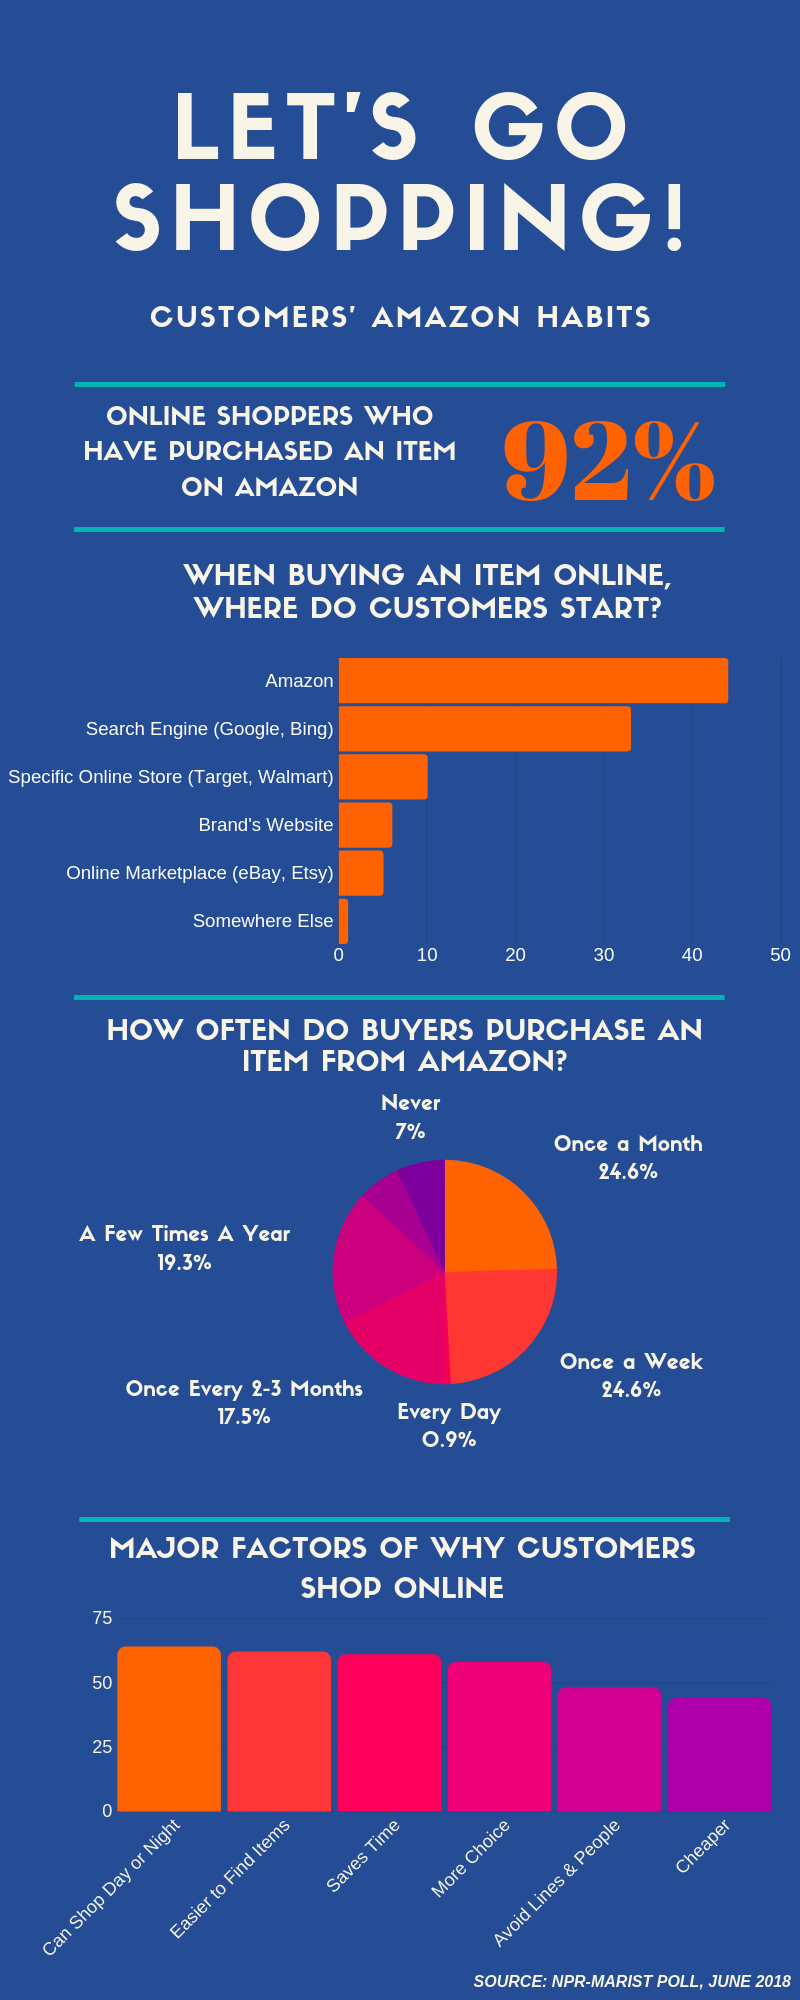 Amazon Ads for your Business, what are the benefits?